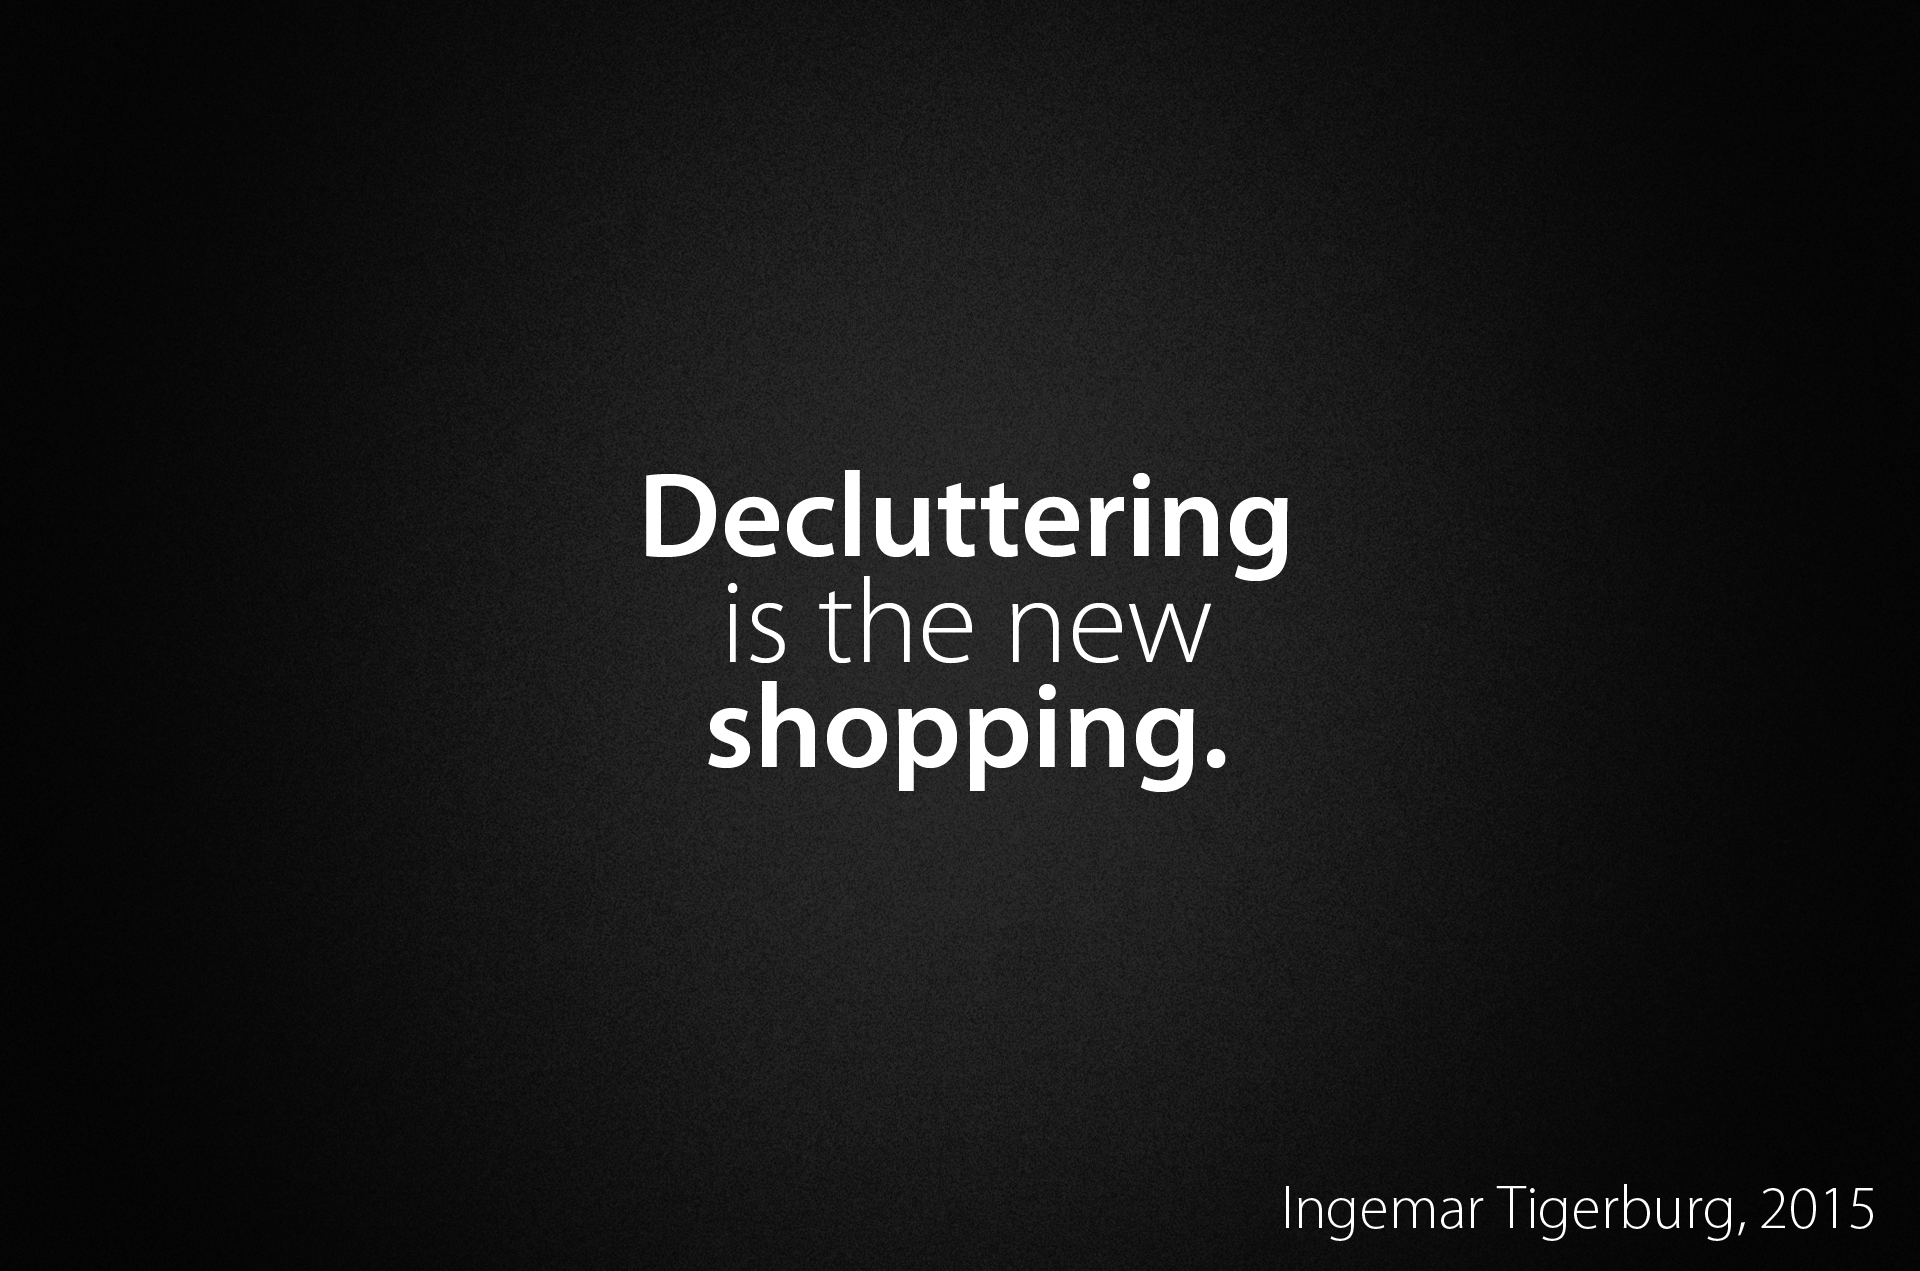 Decluttering Is The New Shopping. So True! LOVE This